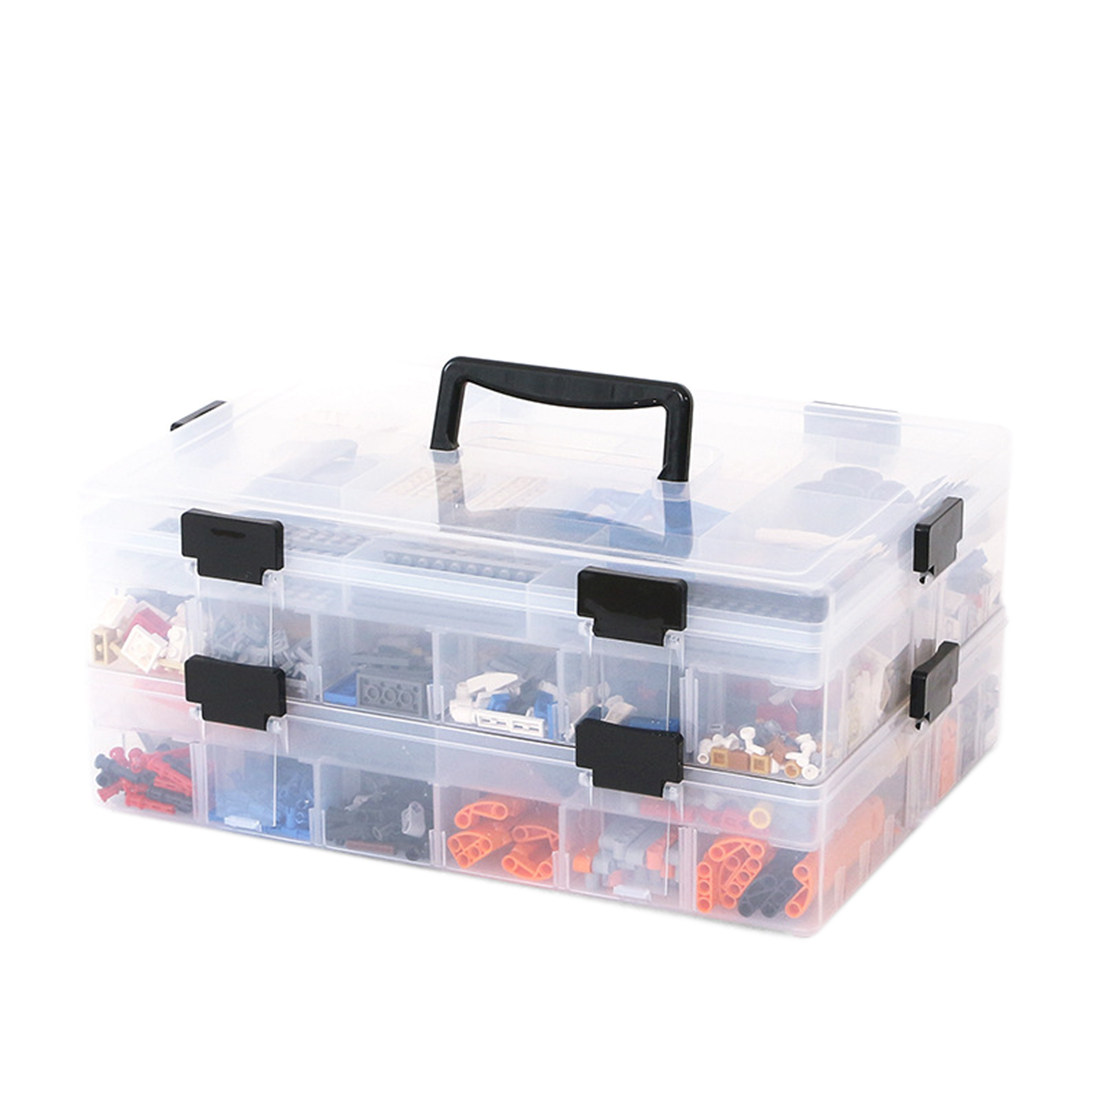 2 Tray Compartment Double-sided Storage Box Practical Fishing Bag Container Hot